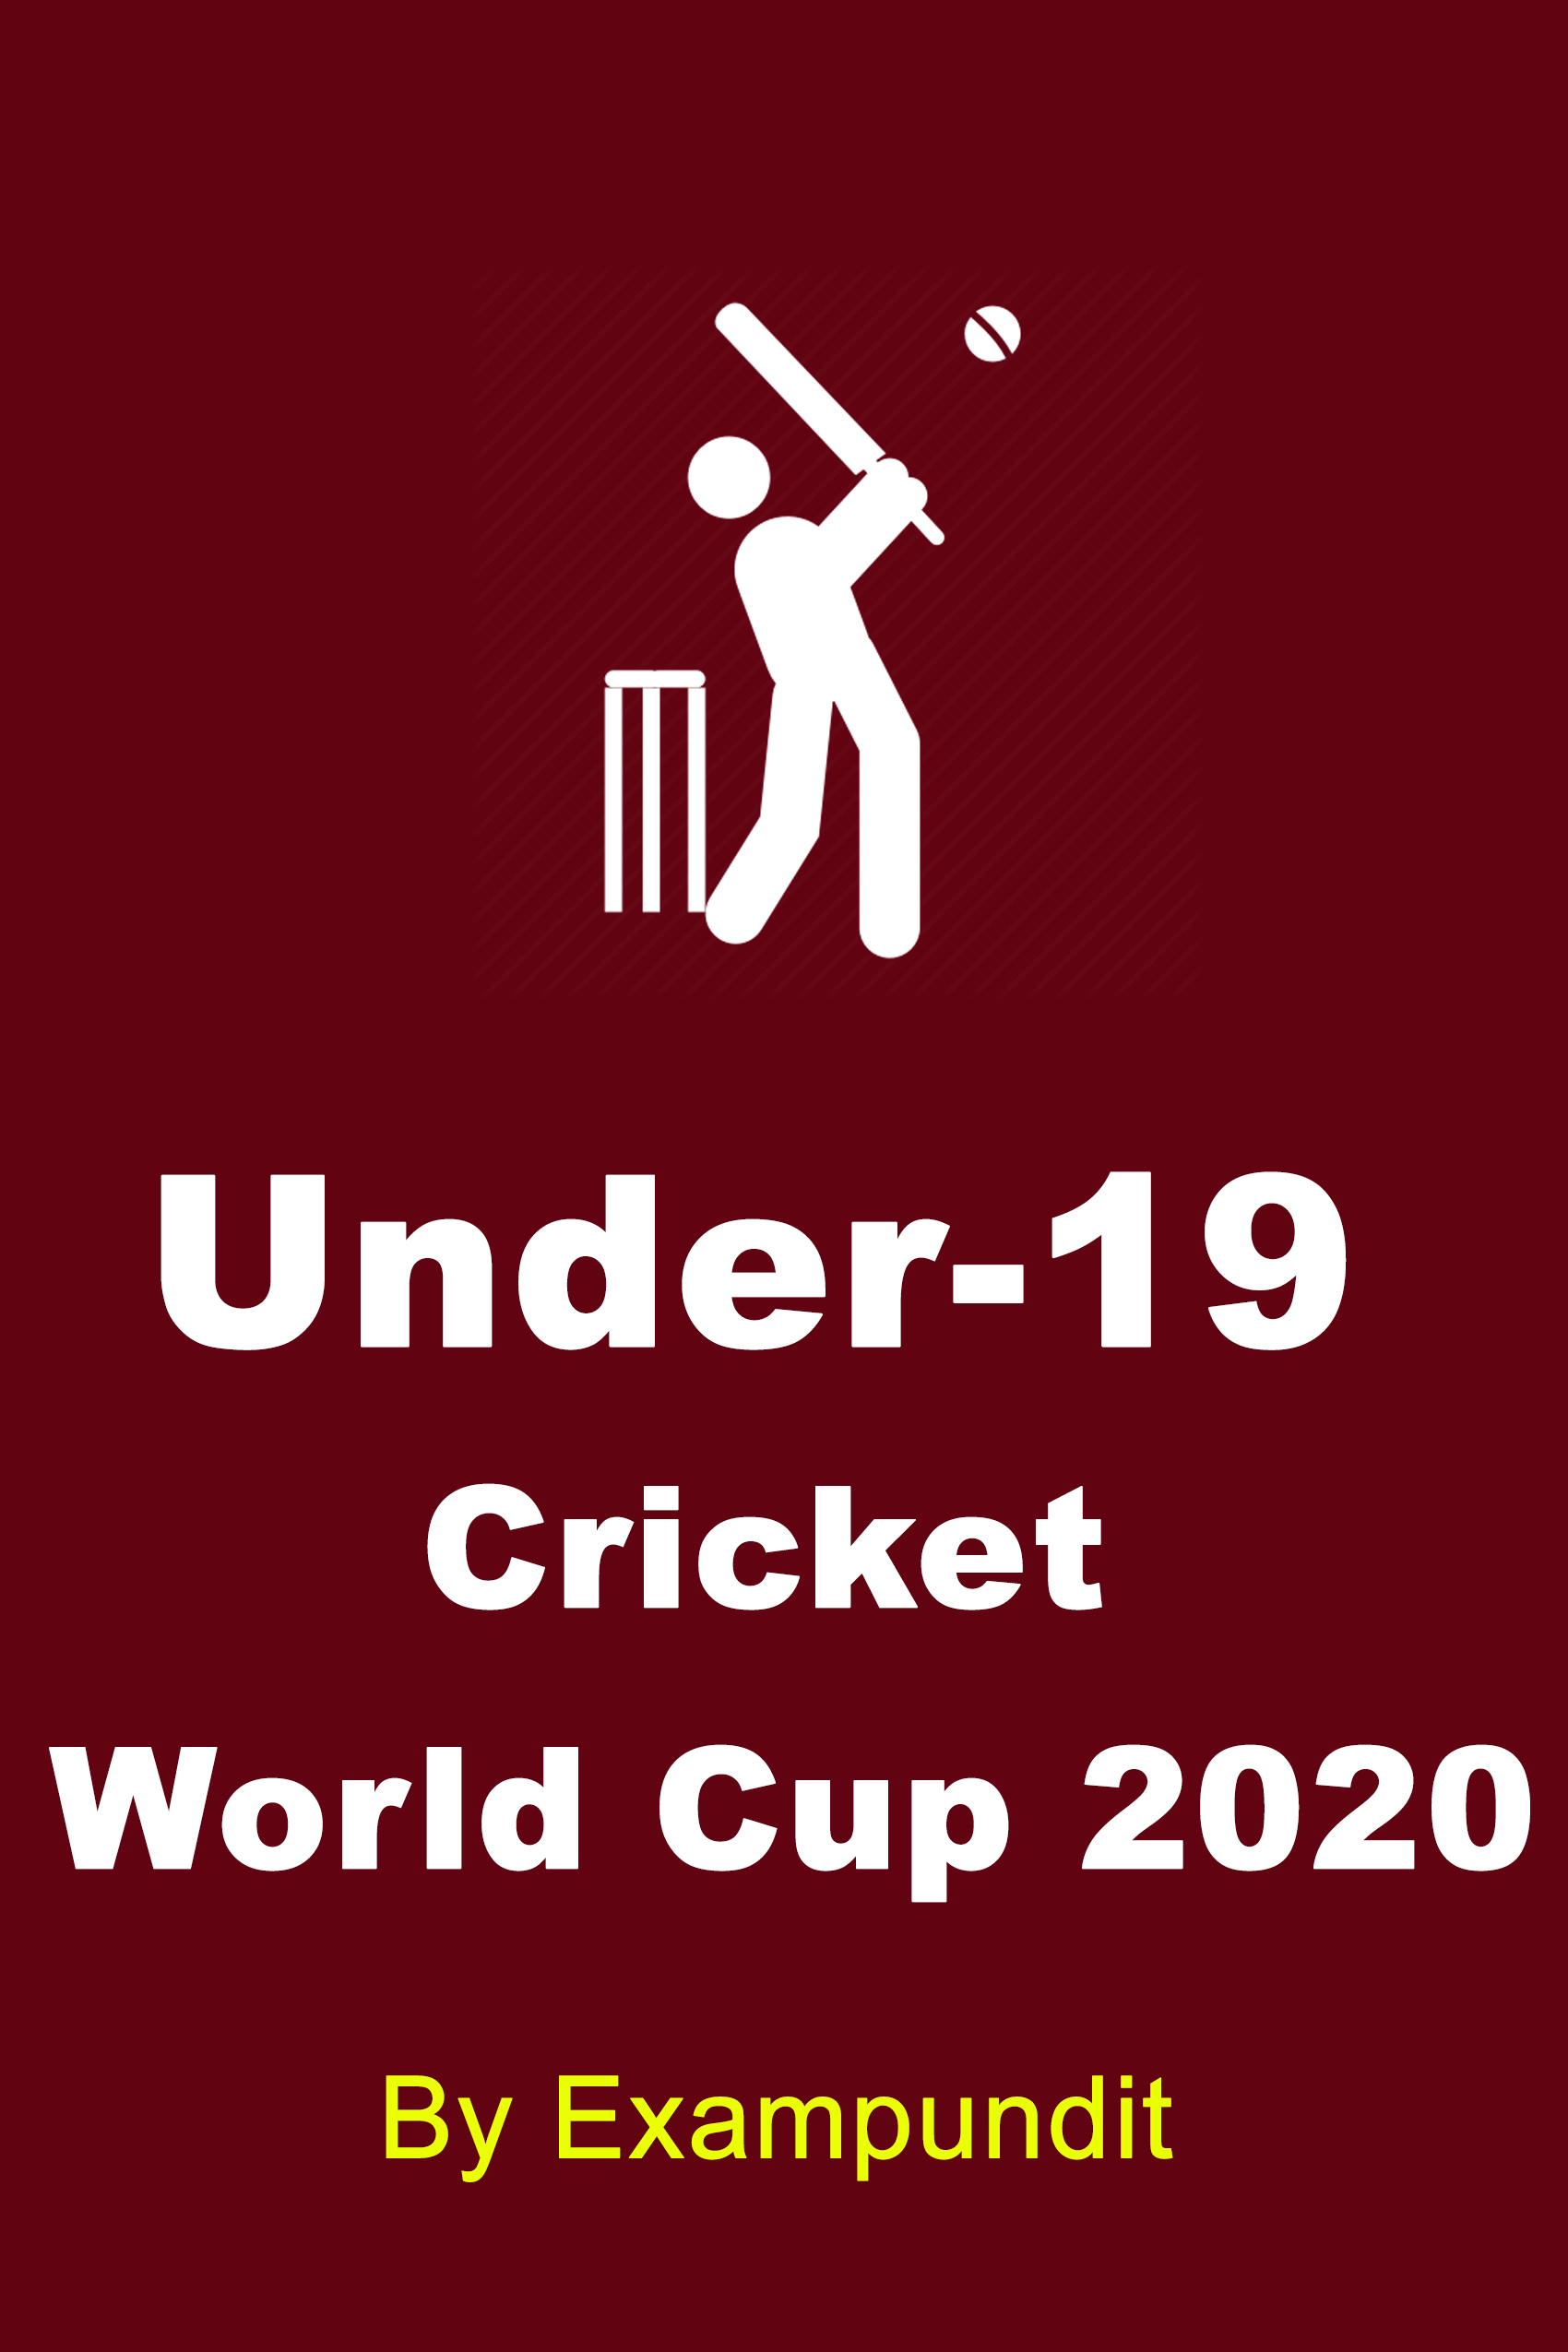 important-details-about-under-19-cricket-world-cup-2020-in-pdf